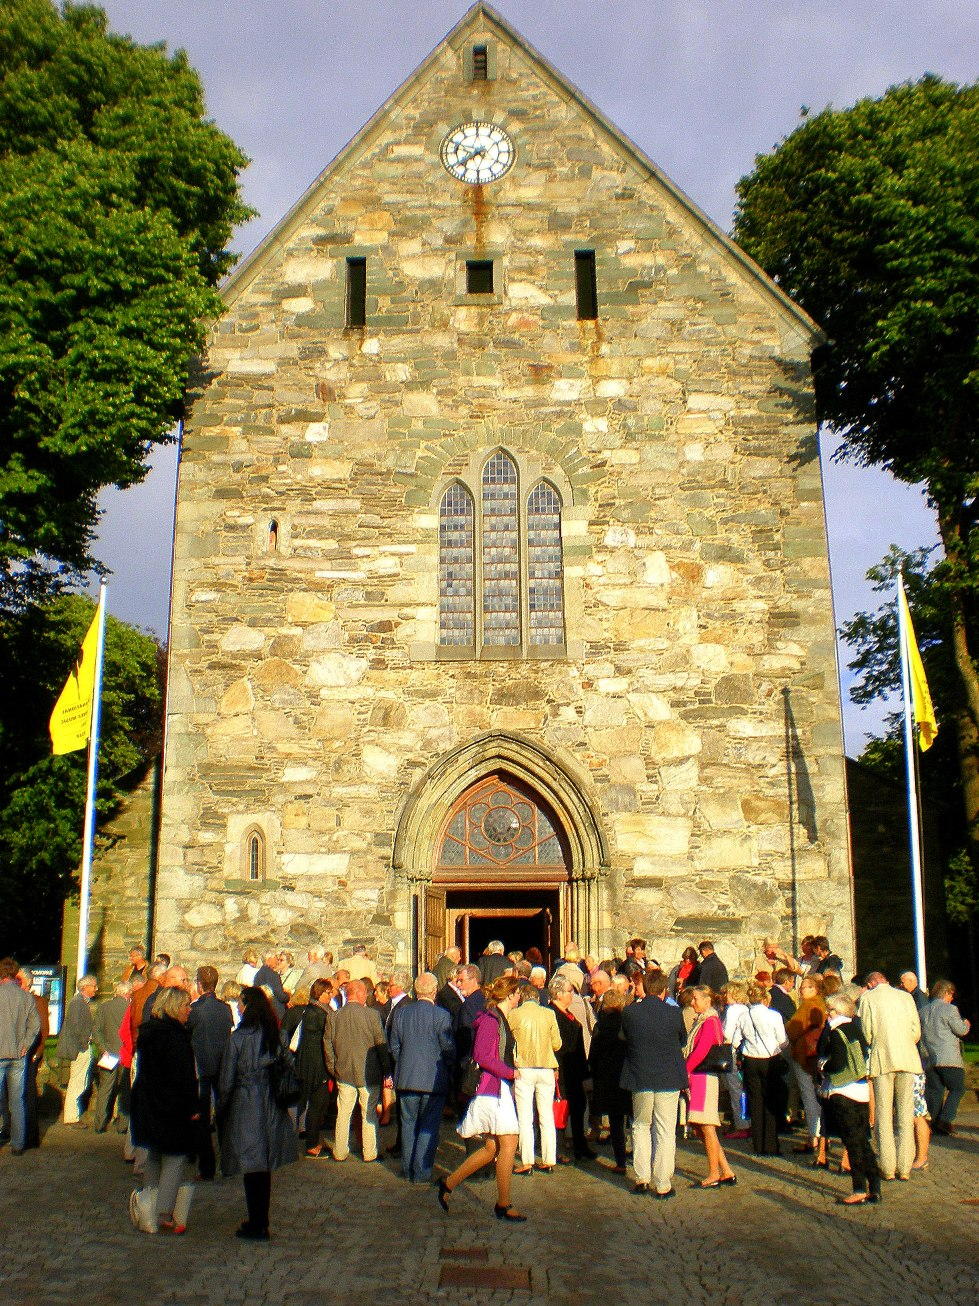 Stavanger festival crowds at the cathedral by David Nice